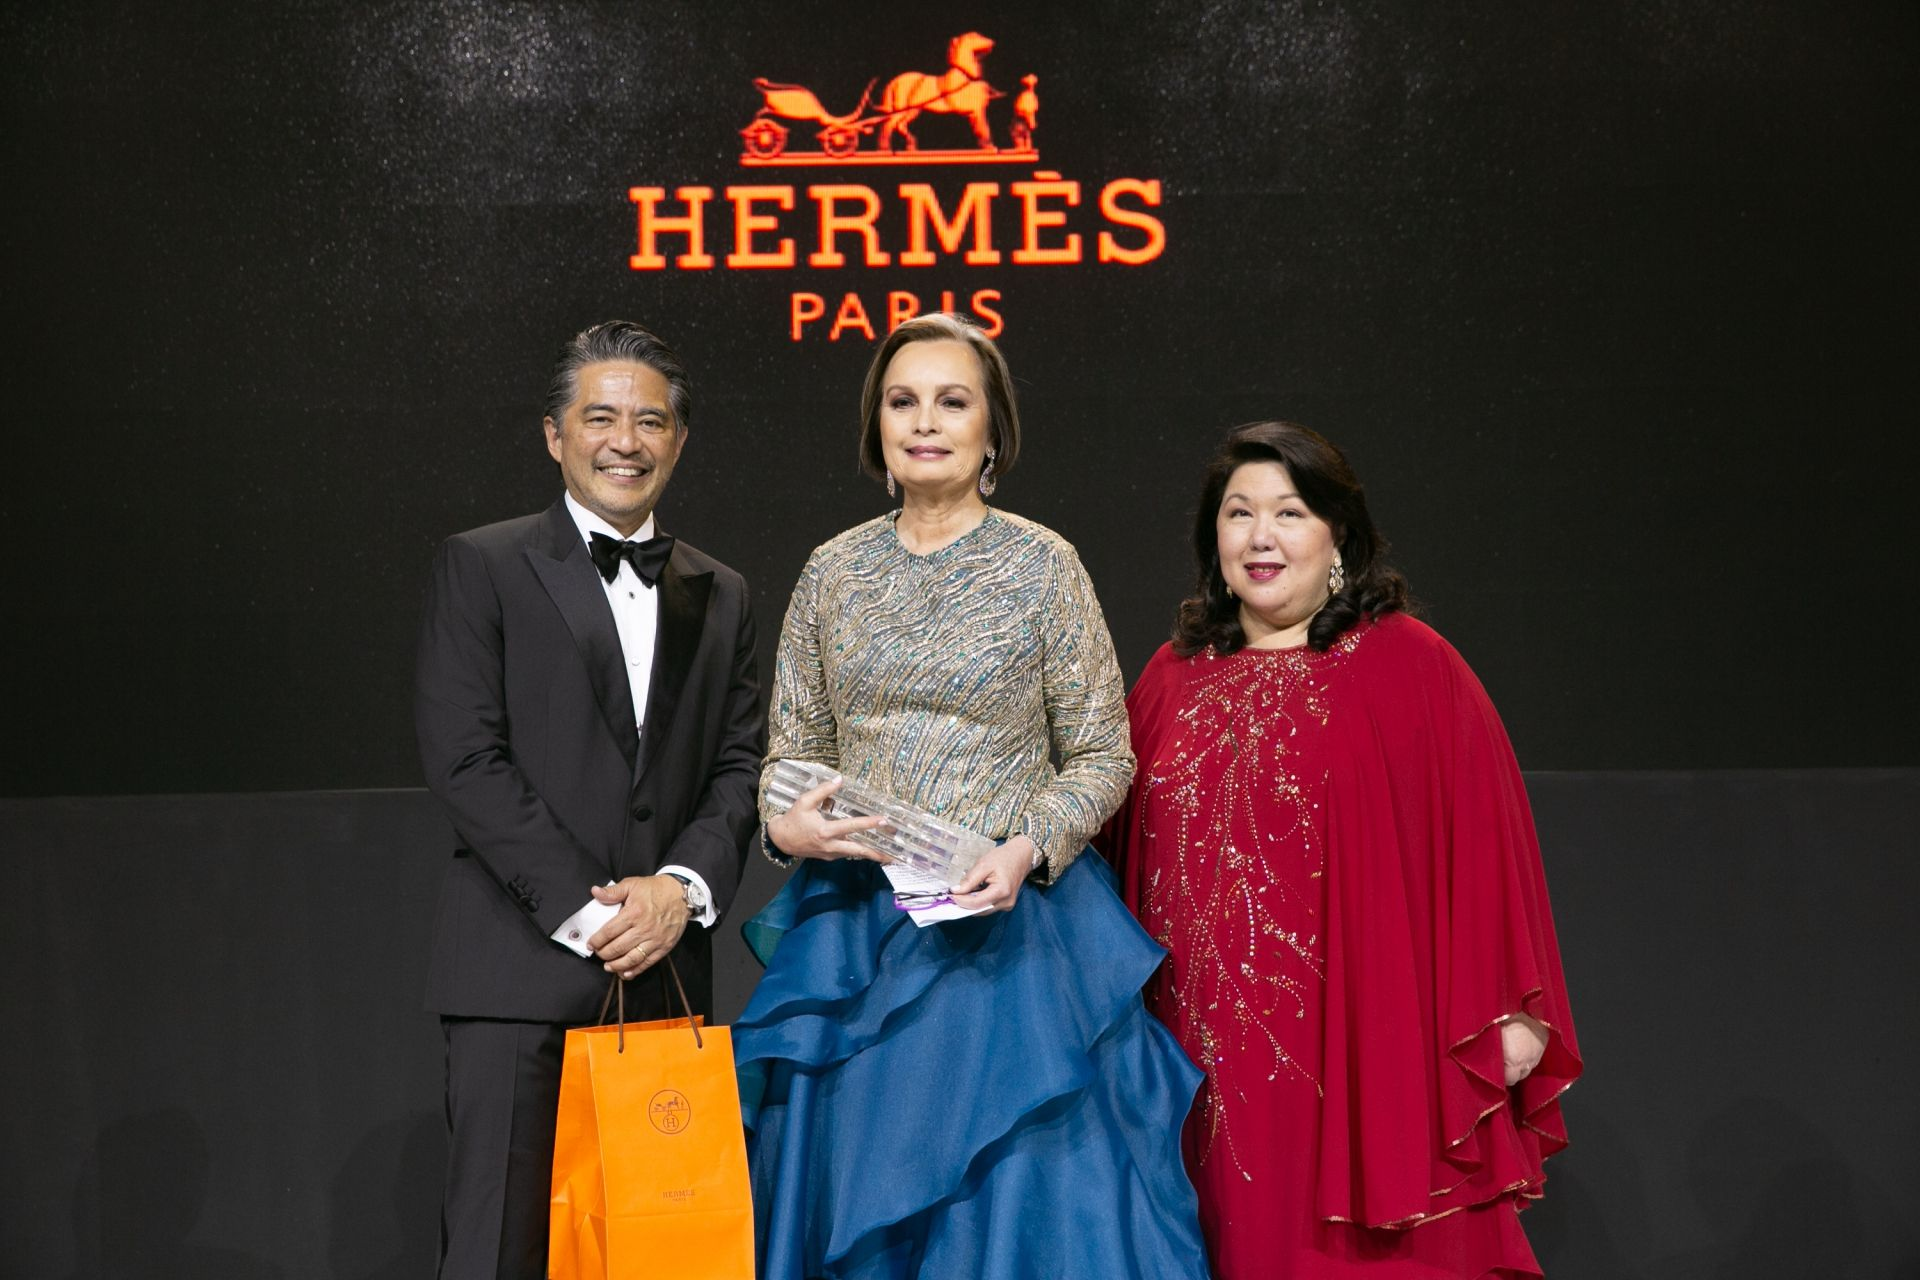 Margie Moran Floirendo is honoured as Patroness of the Arts 2018. | She received a gift courtesy from Hermes.